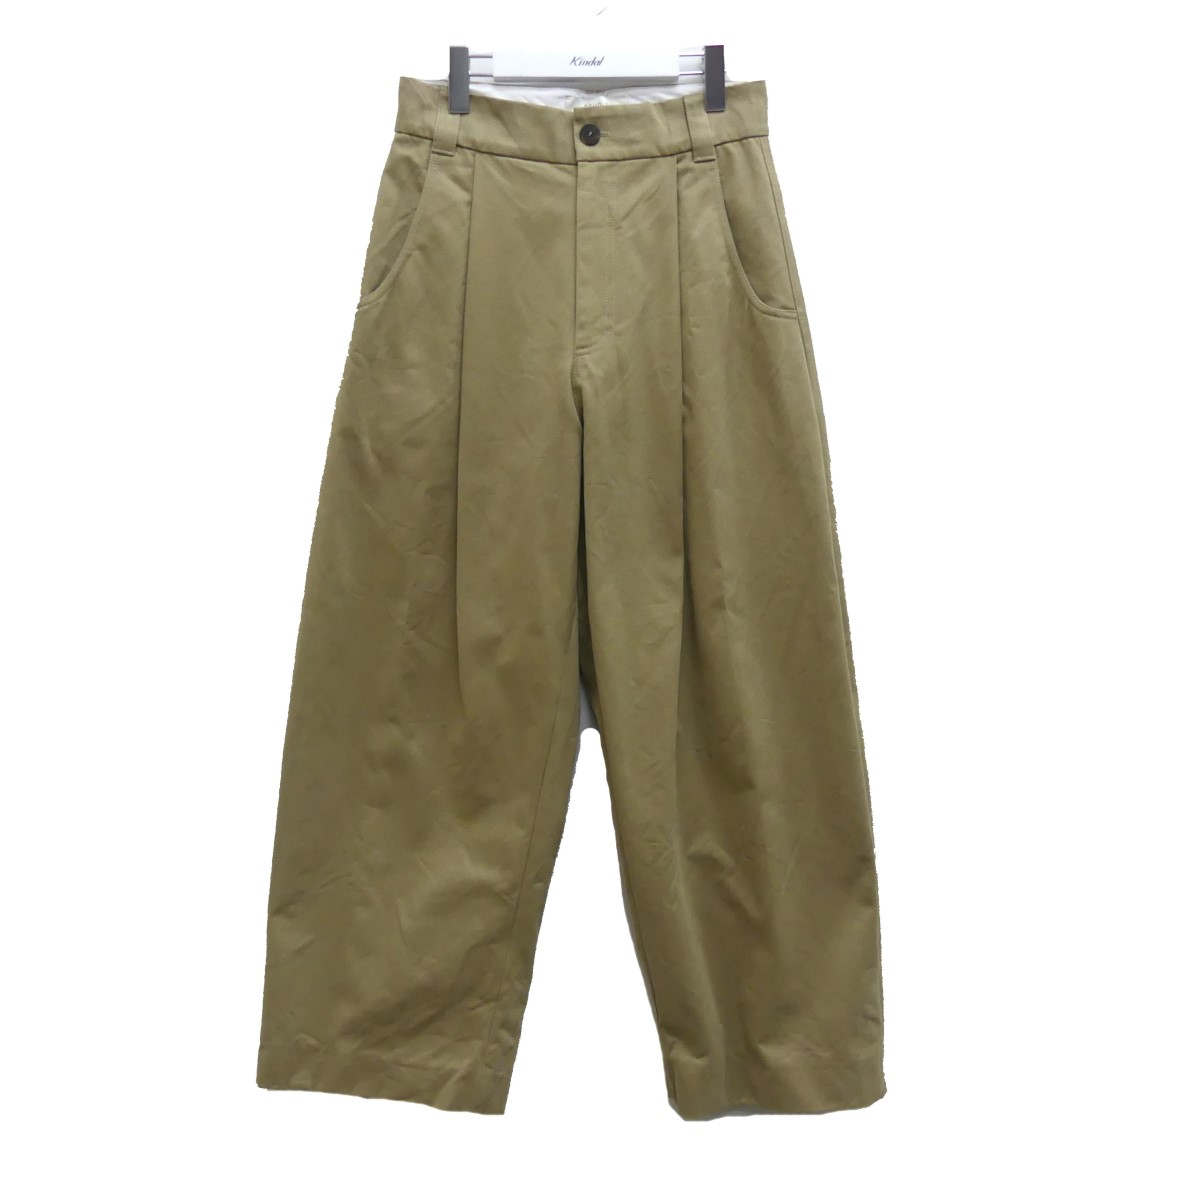 【中古】STUDIO NICHOLSON 20SS PEACHED COTTON TWILL PANTS-VOLUME PLEAT PANTS TAN サイズ:XS 【220720】(スタジオニコルソン)